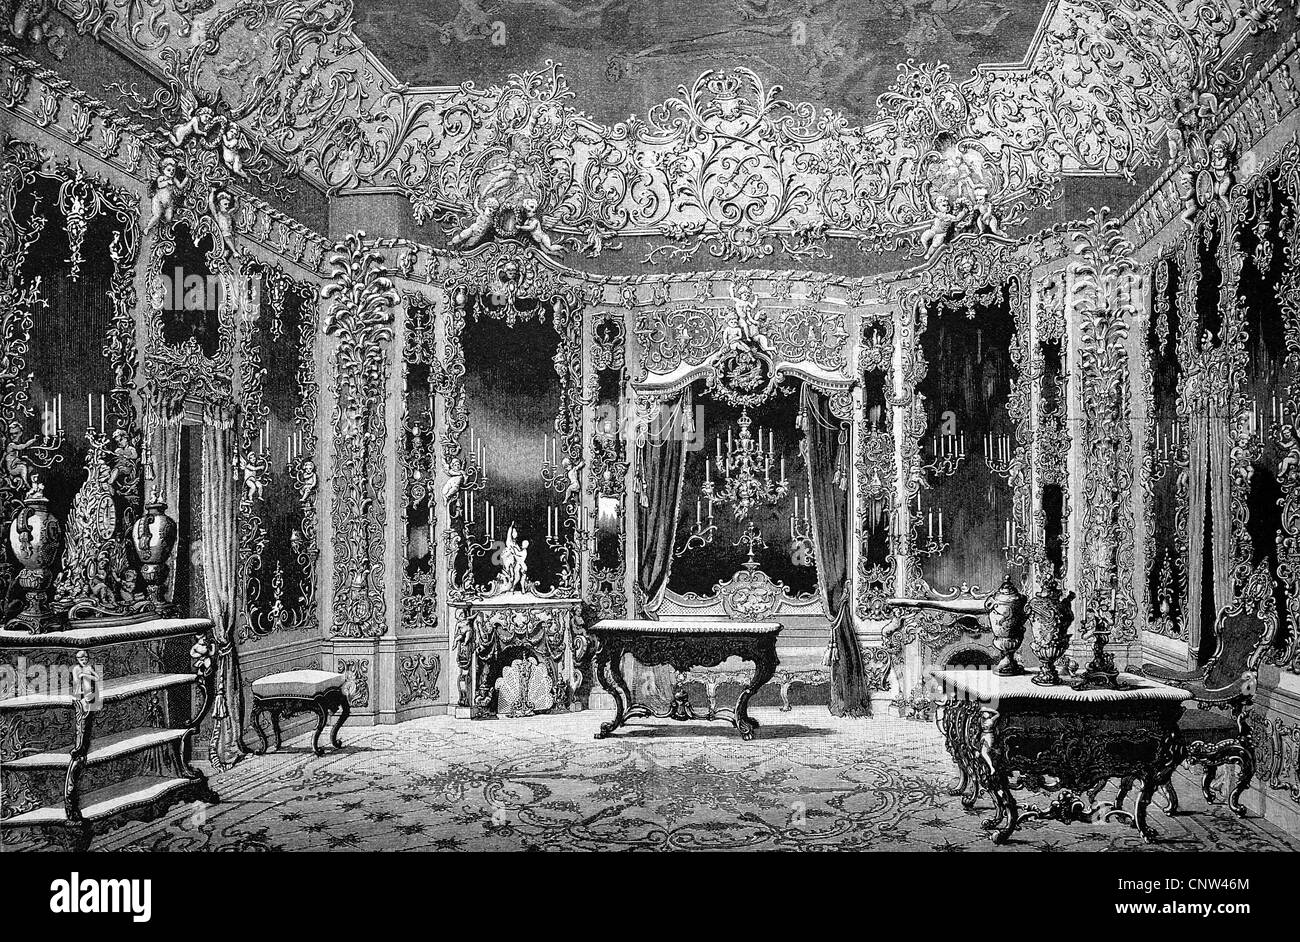 Hall of Mirrors in Schloss Linderhof Palace, Ettal, Bavaria, Germany, historical wood engraving, 1886 - Stock Image